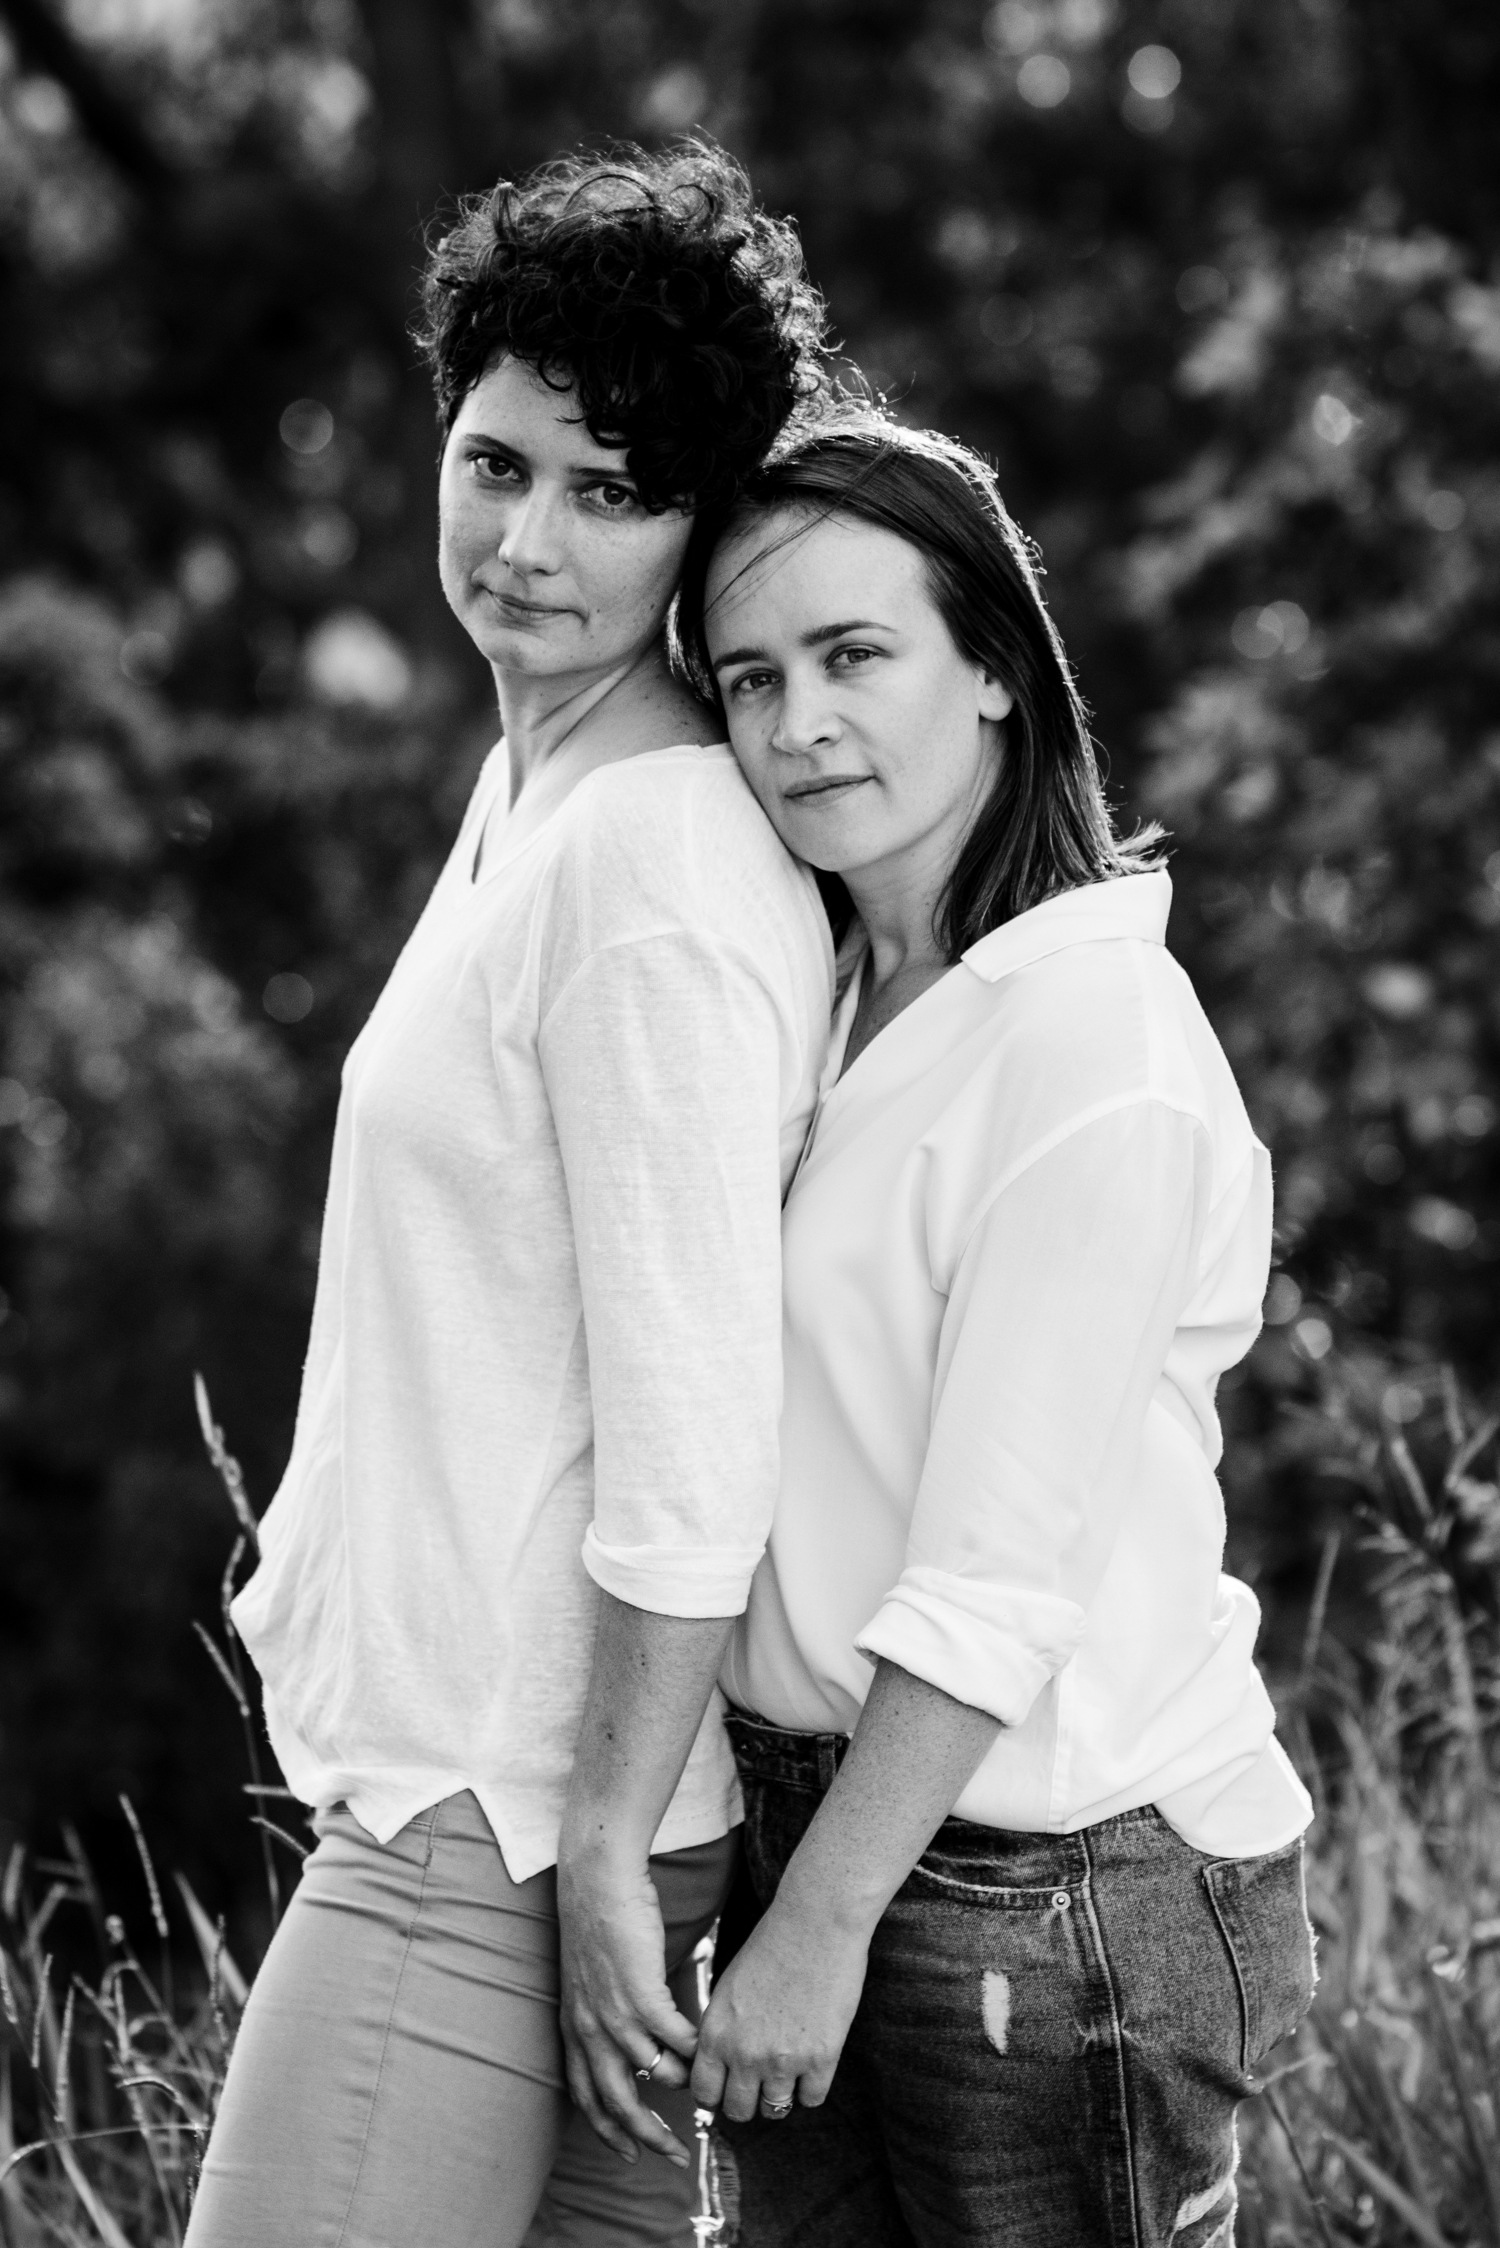 Brisbane Lesbian Wedding Photographer | Same-Sex Engagement-Elopement Photography-14.jpg